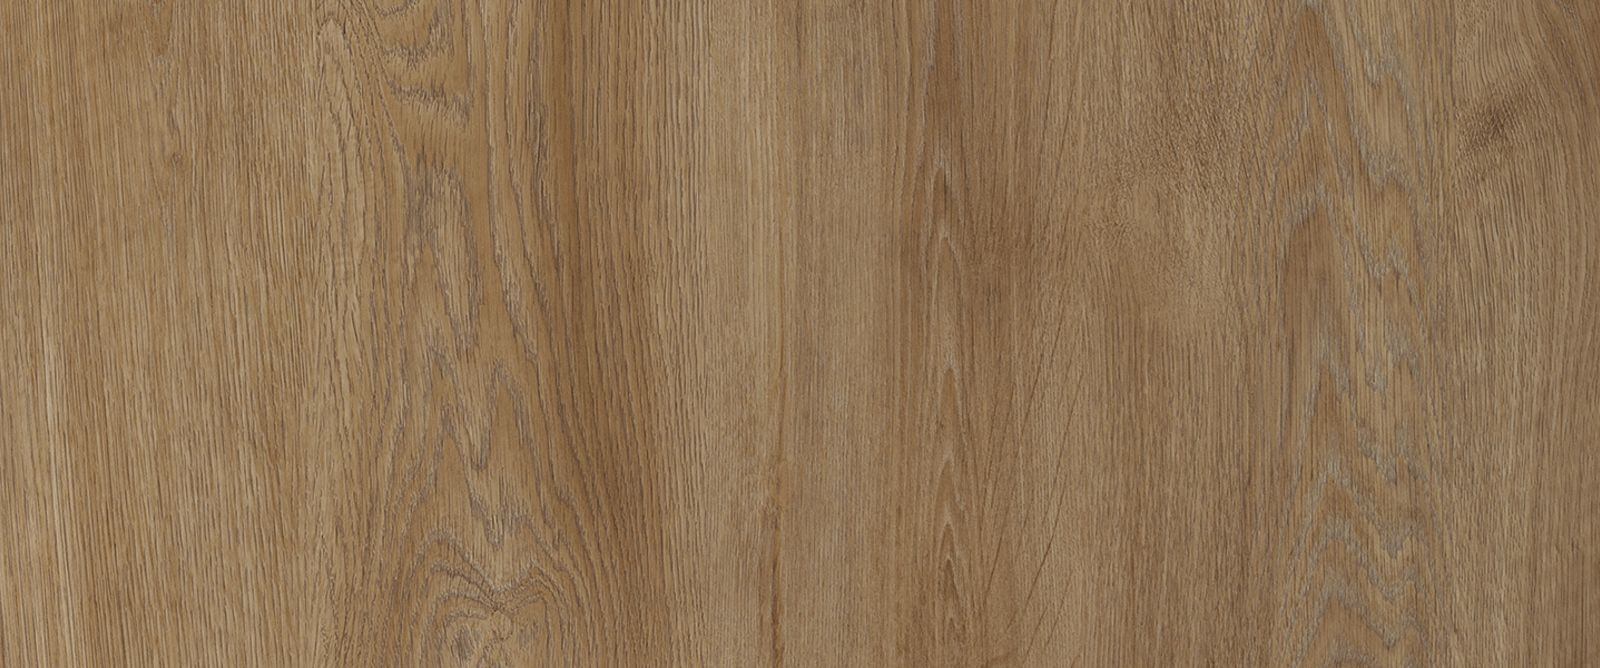 skai® woodec Turner Oak malt